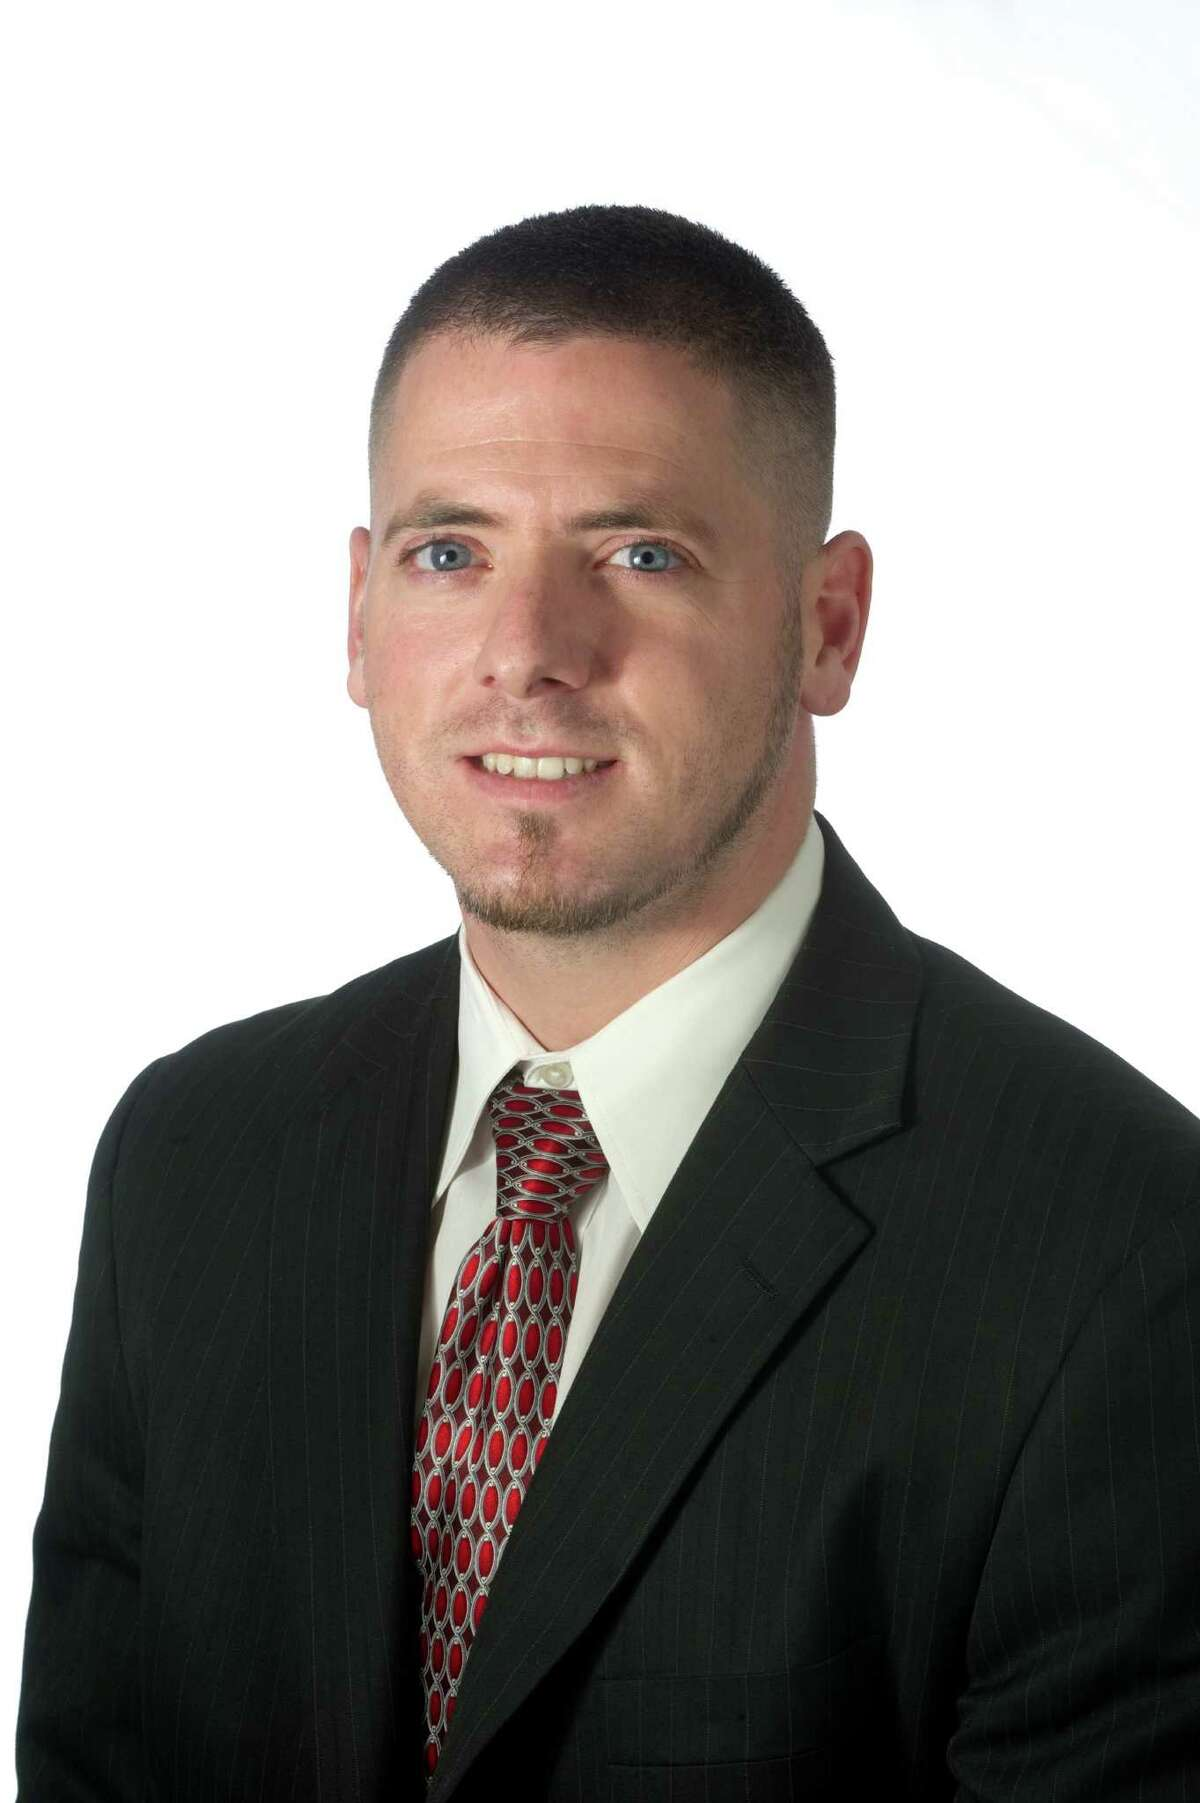 Brandon Huskey has been named vice president, branch sales and service manager of its recently opened Mercantil Commercebank at 12145 FM 1960 West.